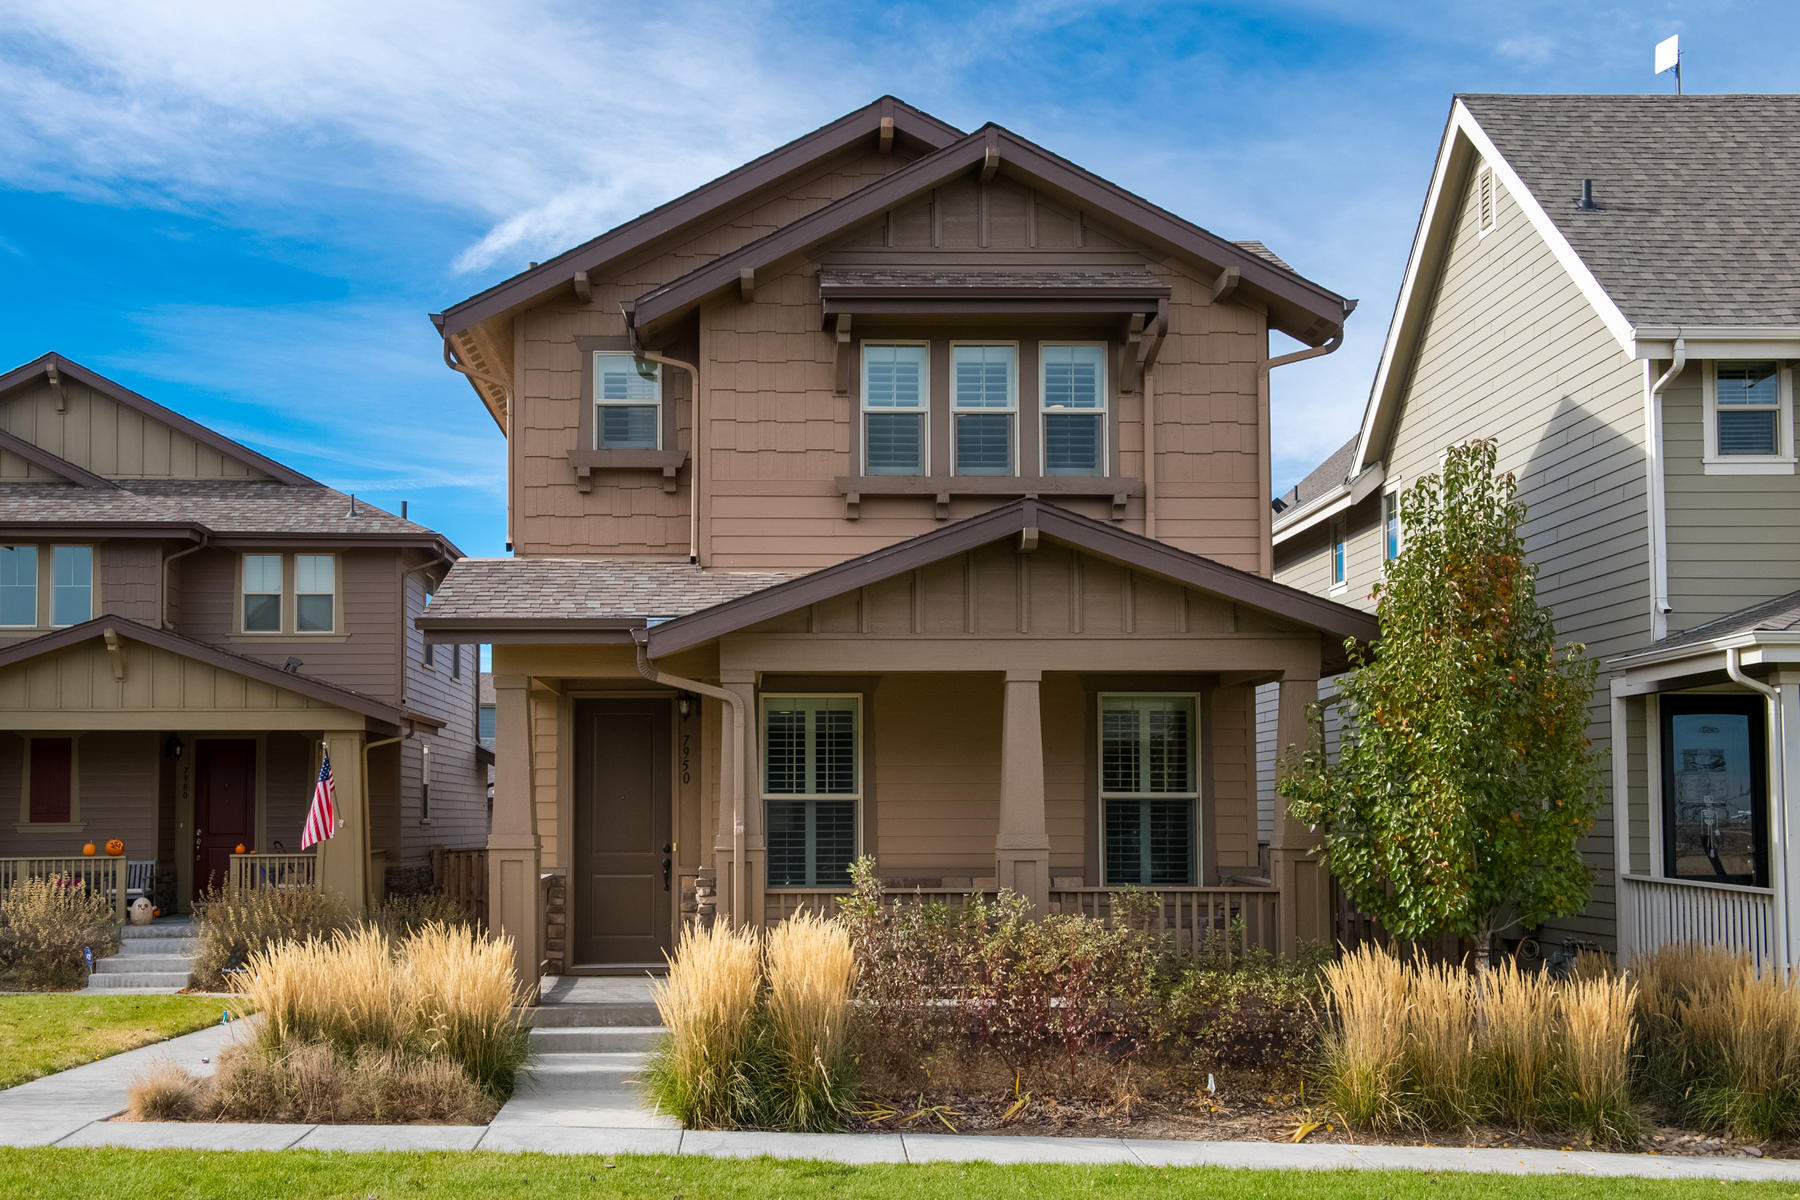 Property for Active at Make Your Daydreams A Reality 7950 E 55th Ave Denver, Colorado 80238 United States